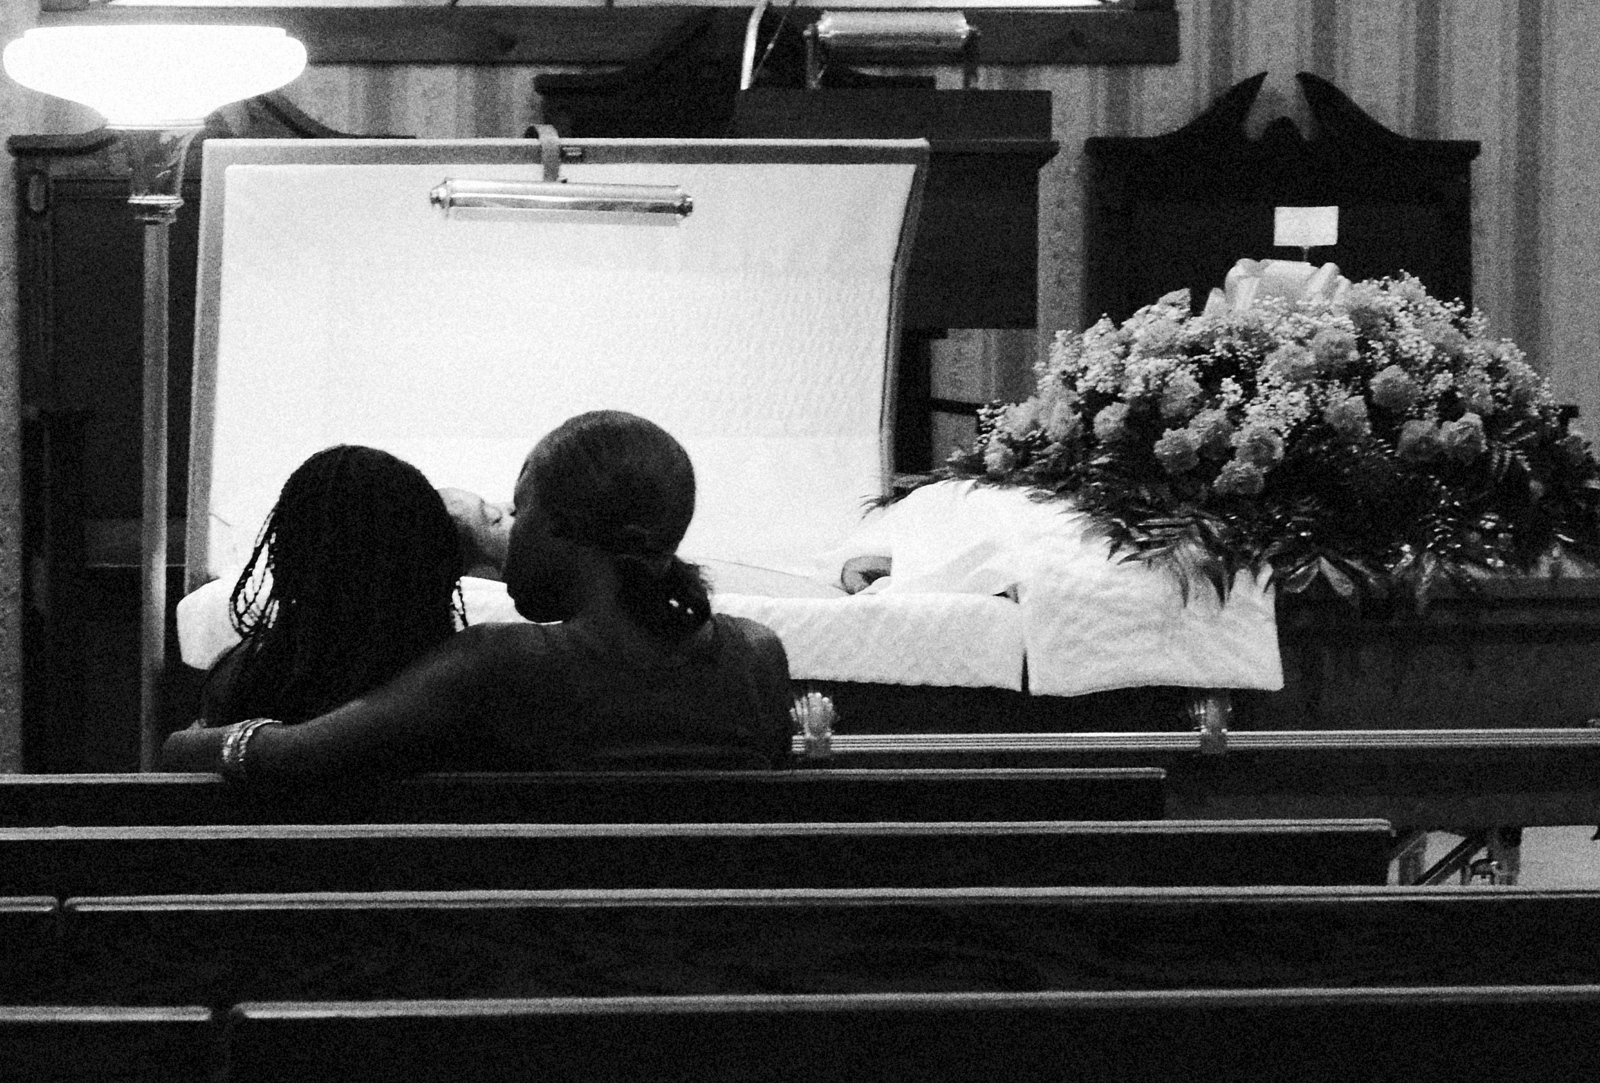 Mourners at the funeral of Davon Ockimey who was gunned down in the 1400 block of Pimlico Road on July 2, 2013,